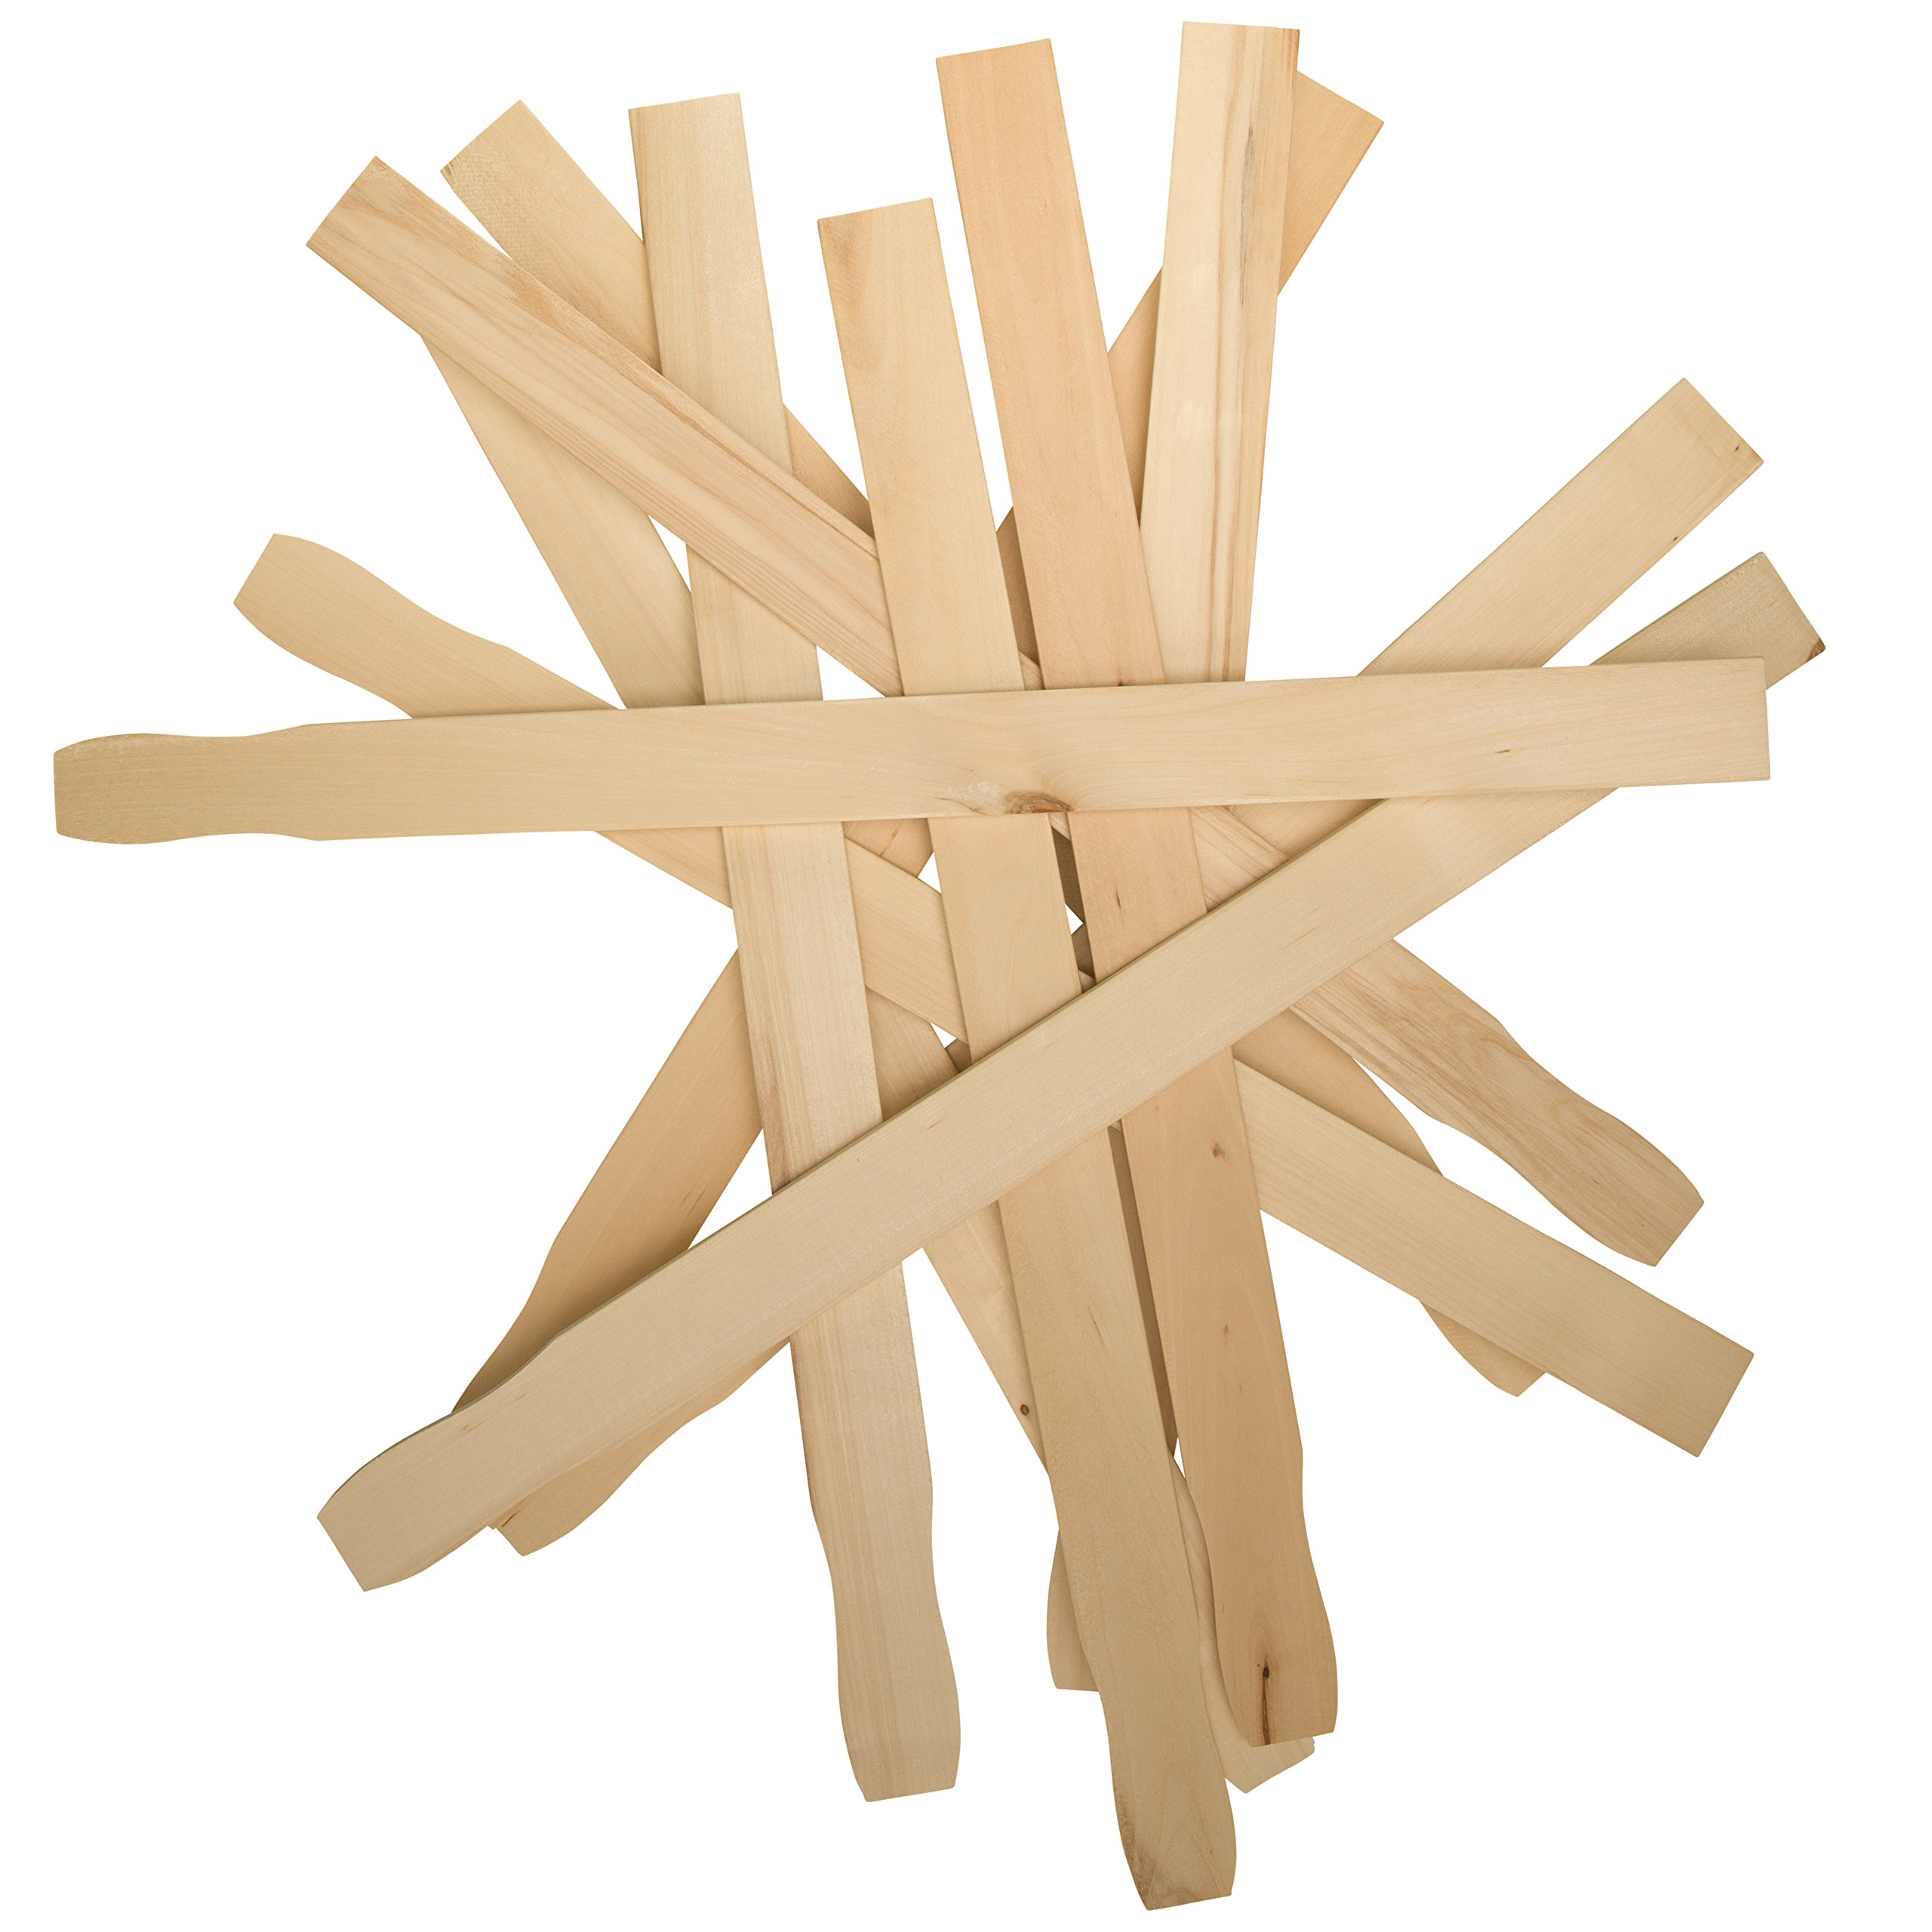 Woodpeckers 100 Piece Stir Sticks Paint Paddle for Mixing Paint/Epoxy/Resin, Multi-Use Library and Garden by Woodpeckers